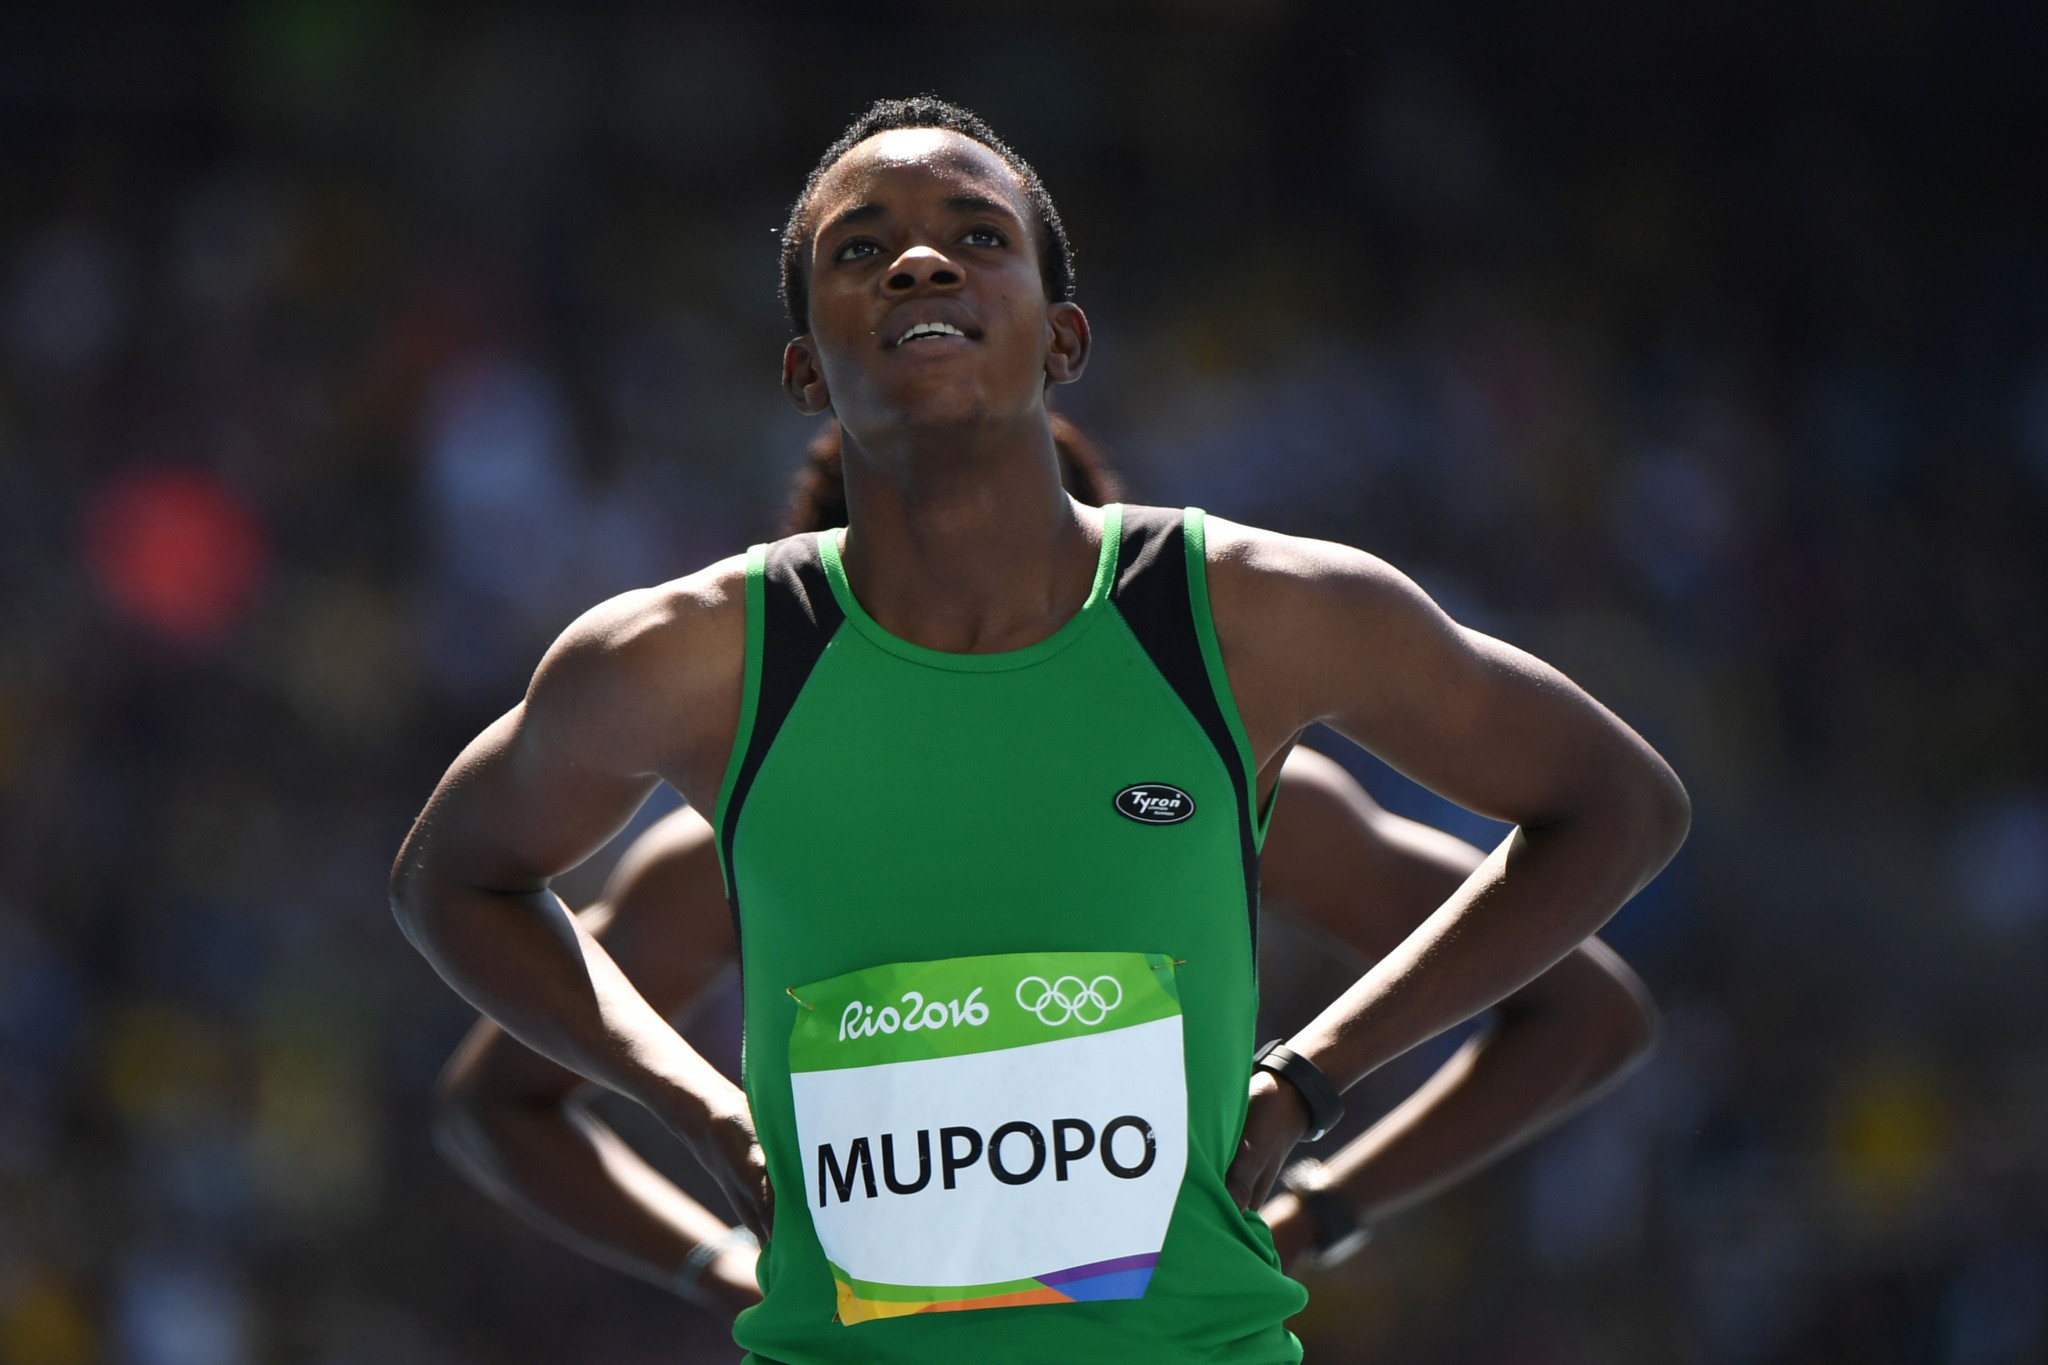 Zambian 400 metres runner and former footballer Kabange Mupopo has been given a four-year ban ©Getty Images